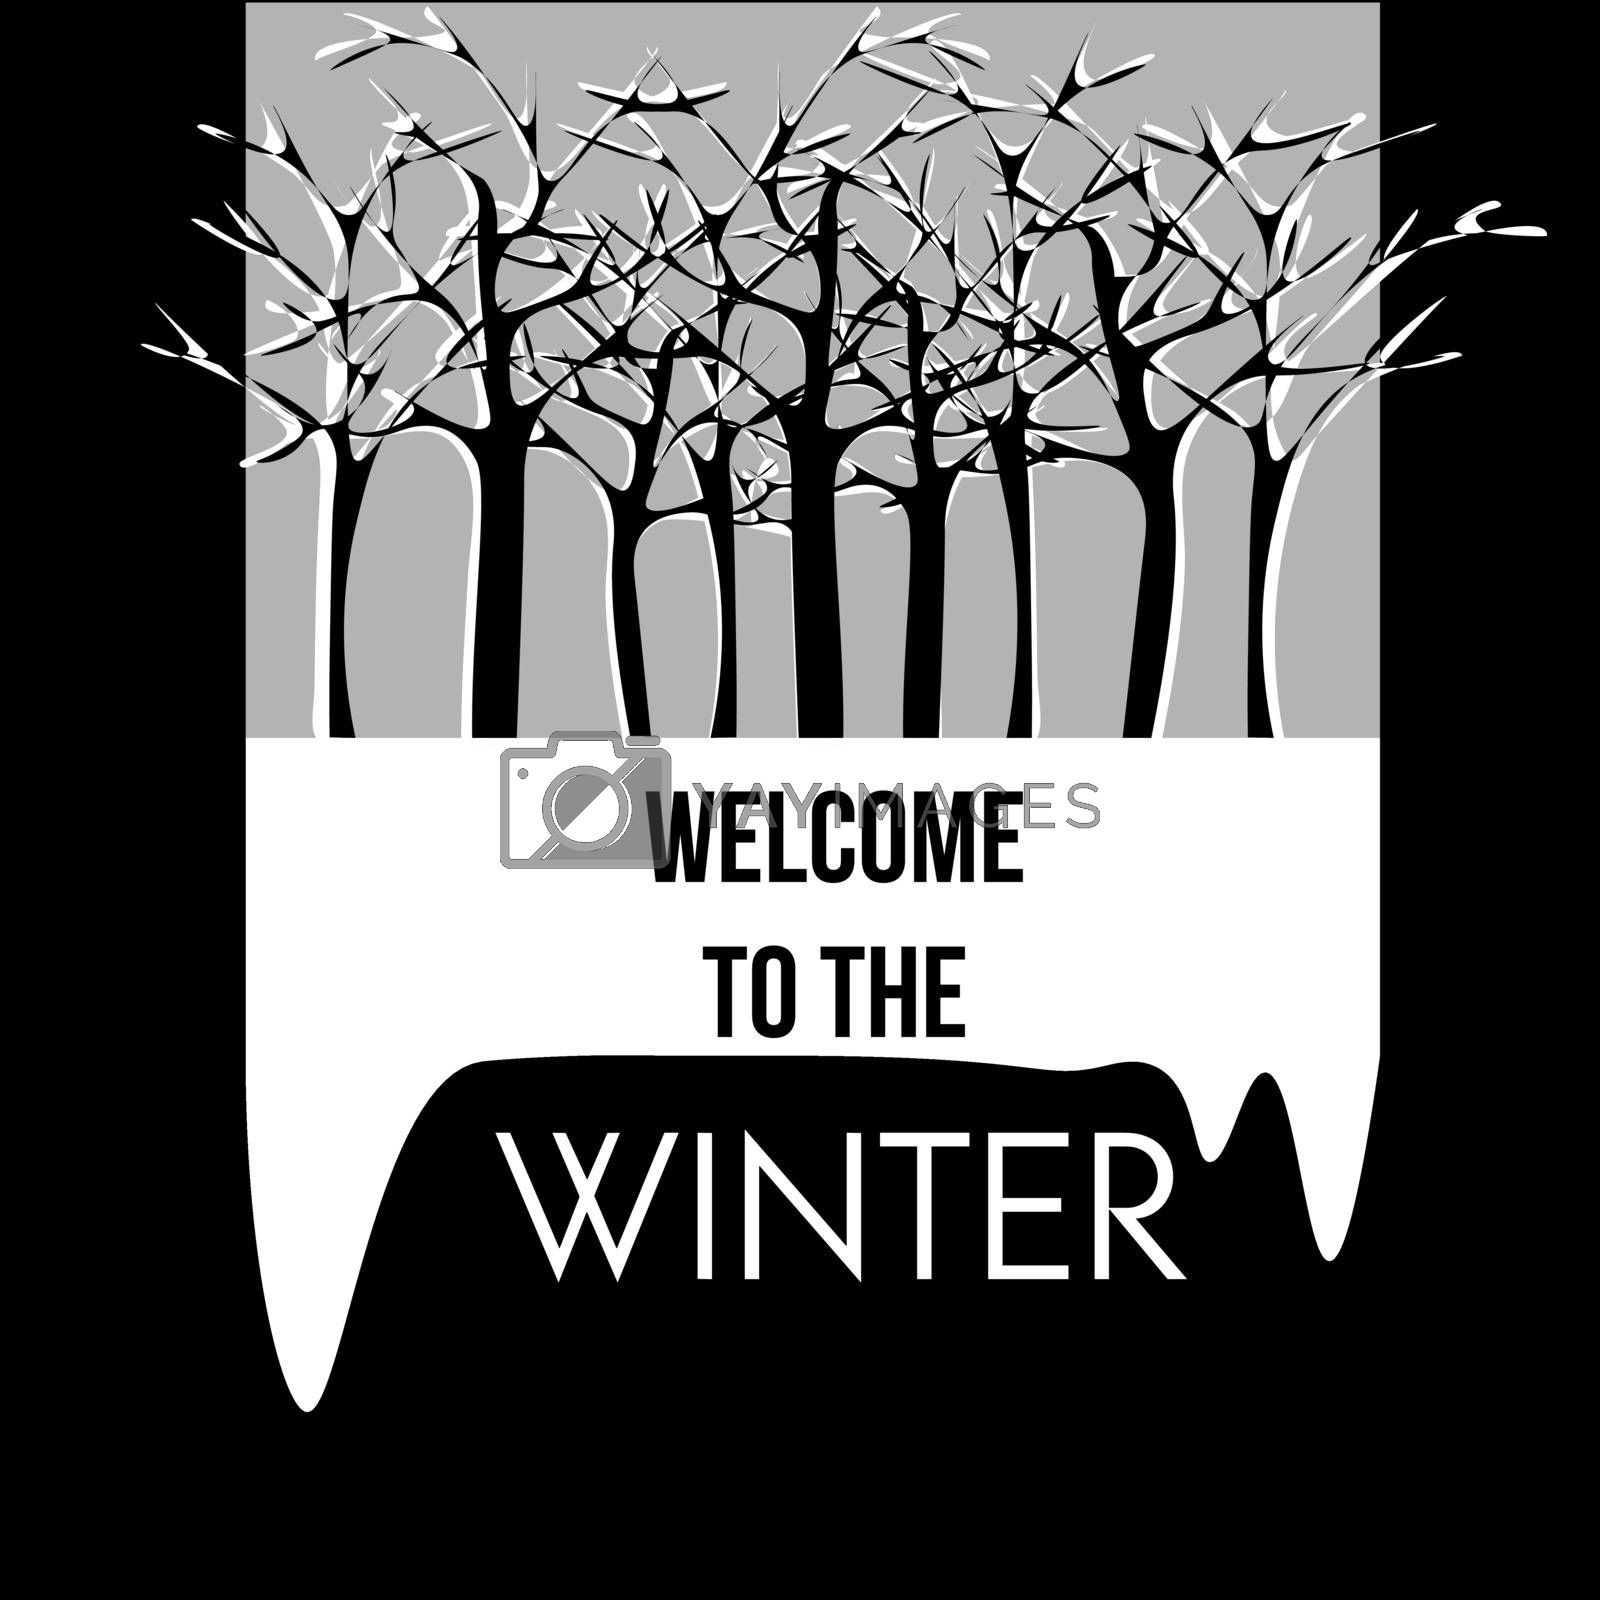 Framed illustration of leafless snowy forest in black, white and grey colors with text welcome to the winter under icicles